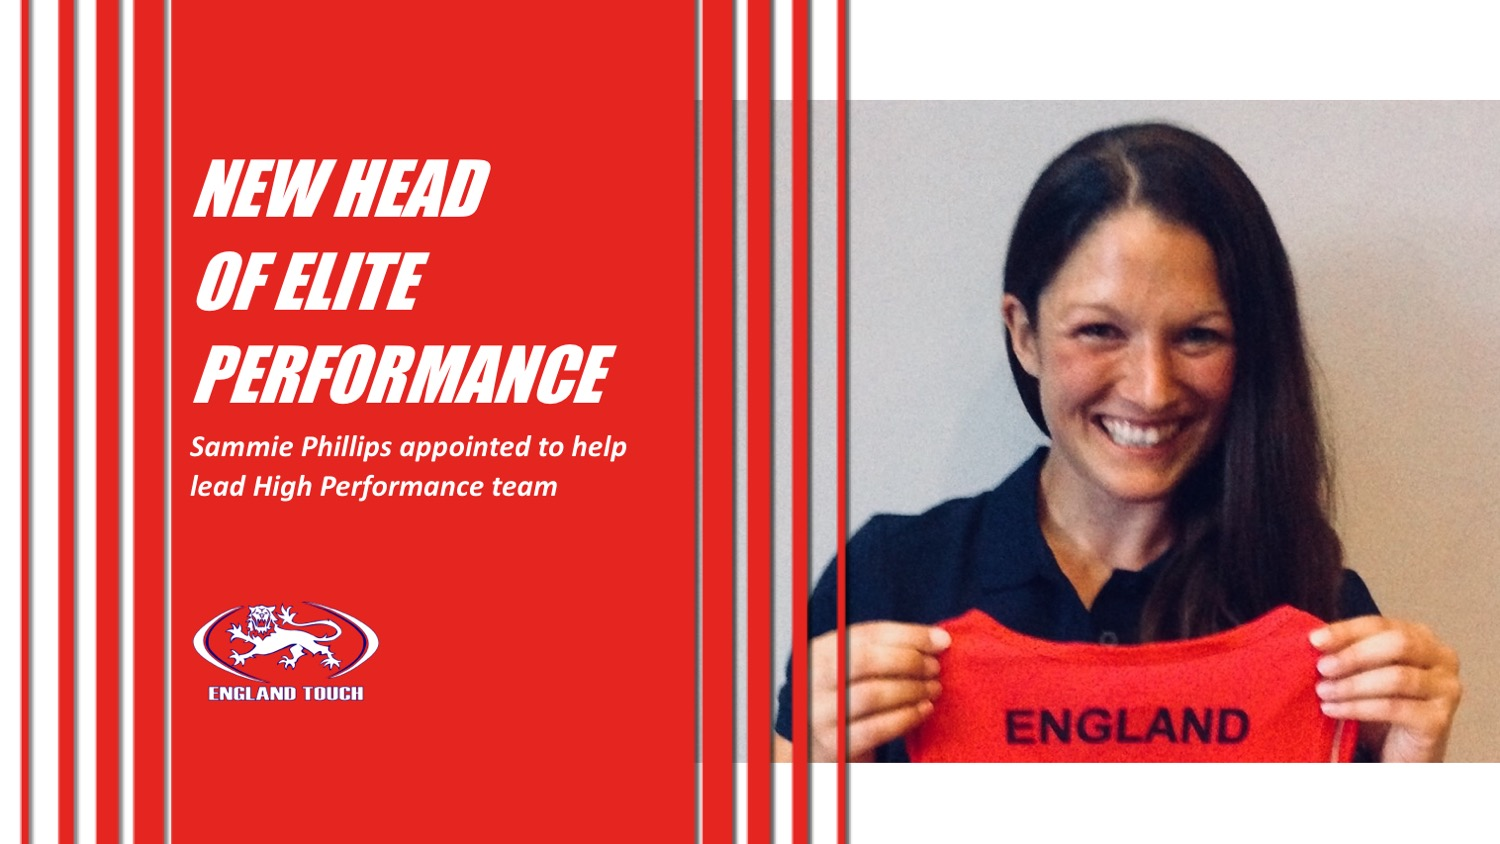 Sammie Phillips appointed as Head of Elite Performance